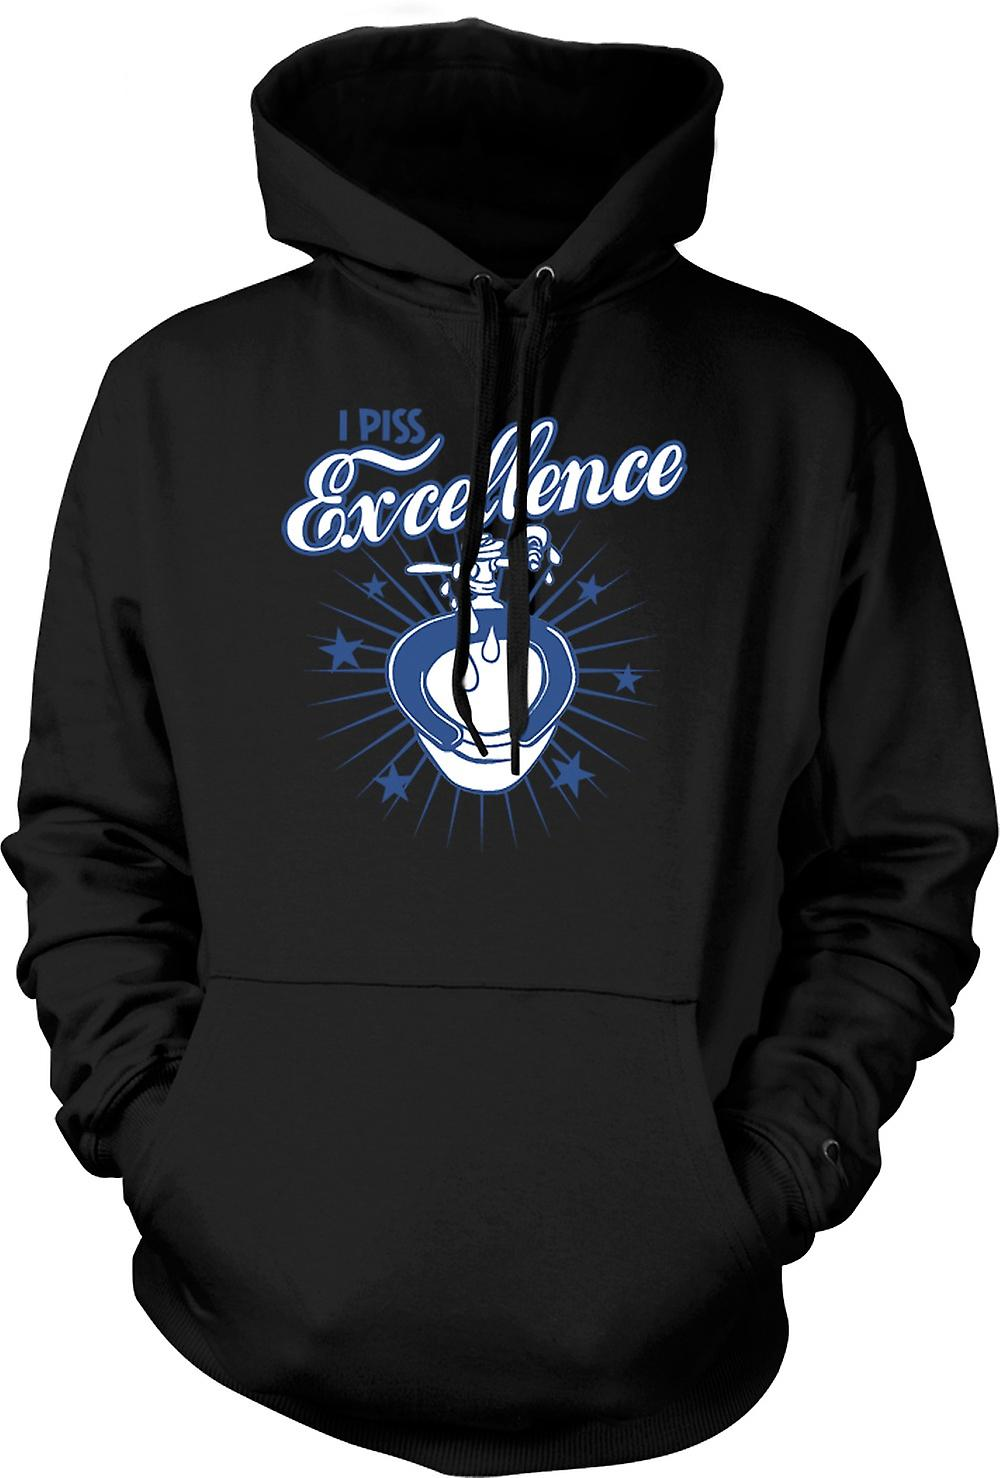 Mens Hoodie - I Piss Excellence - Funny